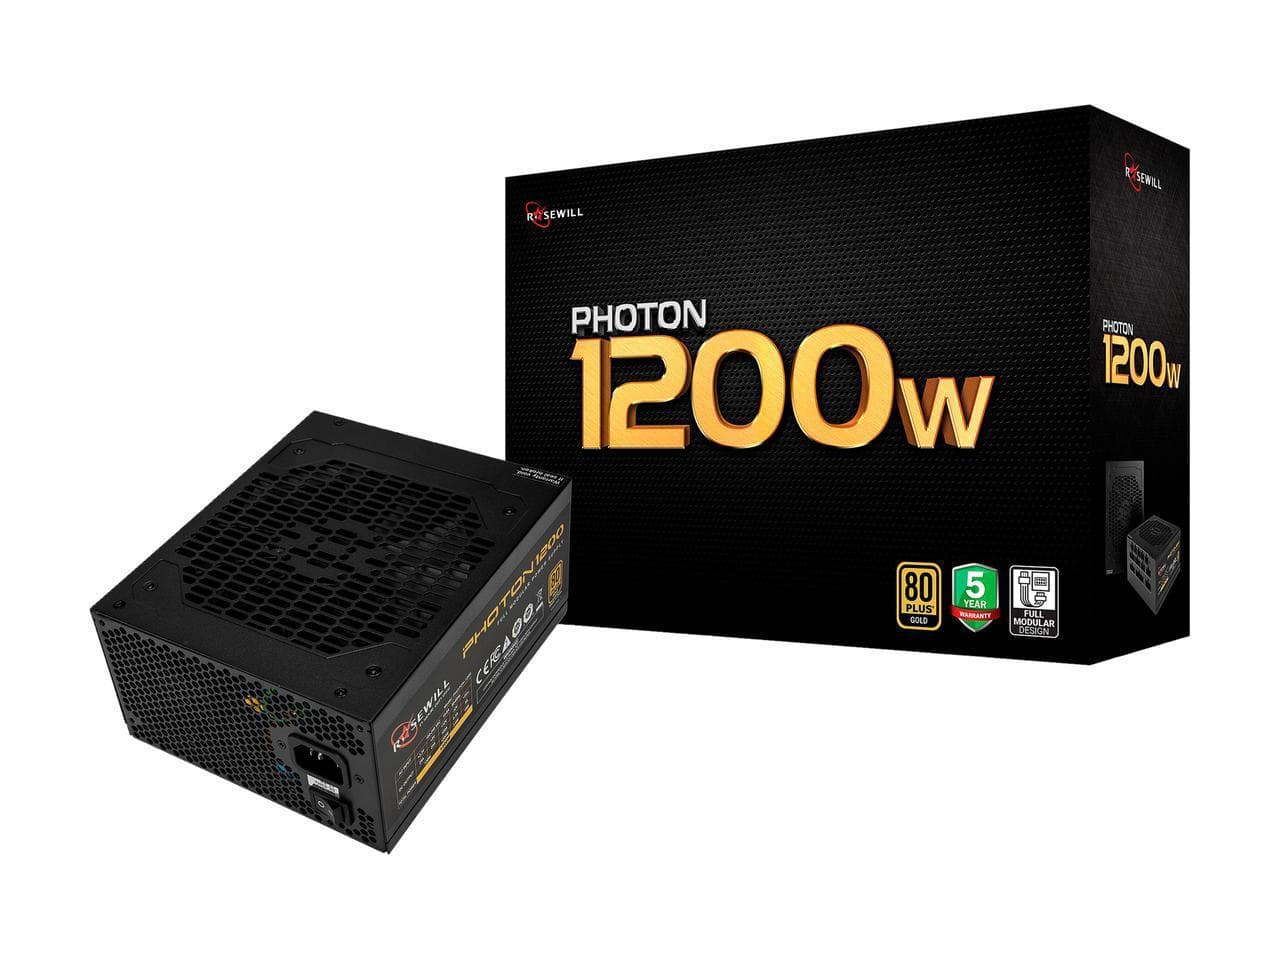 Rosewill Photon 1200W 80+ Gold Certified Full Modular Gaming Power Supply + 6-Outlet Rosewill 125V Power Strip $108.99 (or Less w/ MasterPass Checkout) + Free Shipping via Newegg